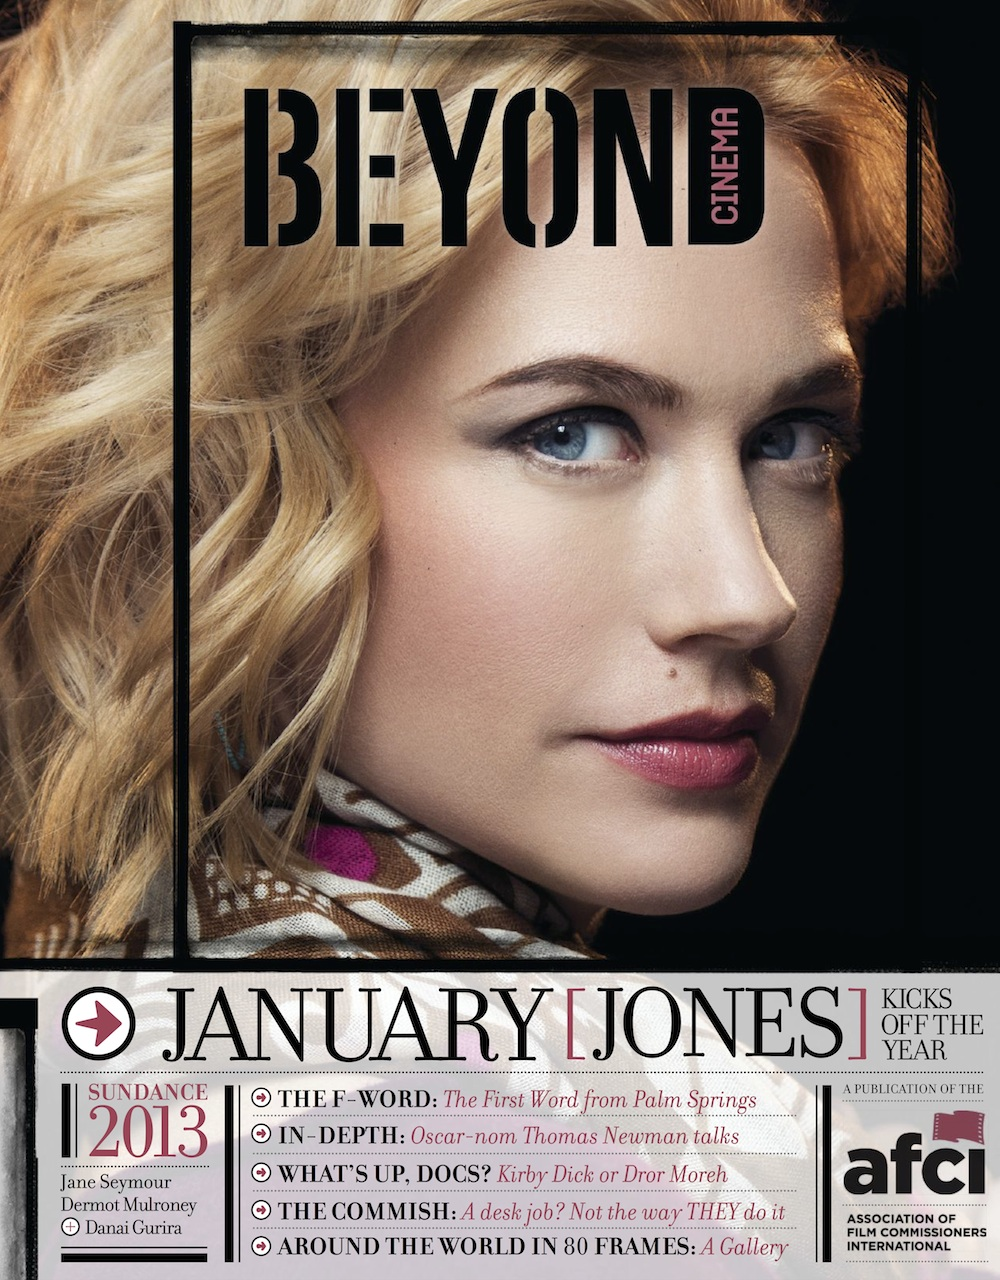 AFCI_Beyond_Cinema_Article_Cover_Only_sm.jpg